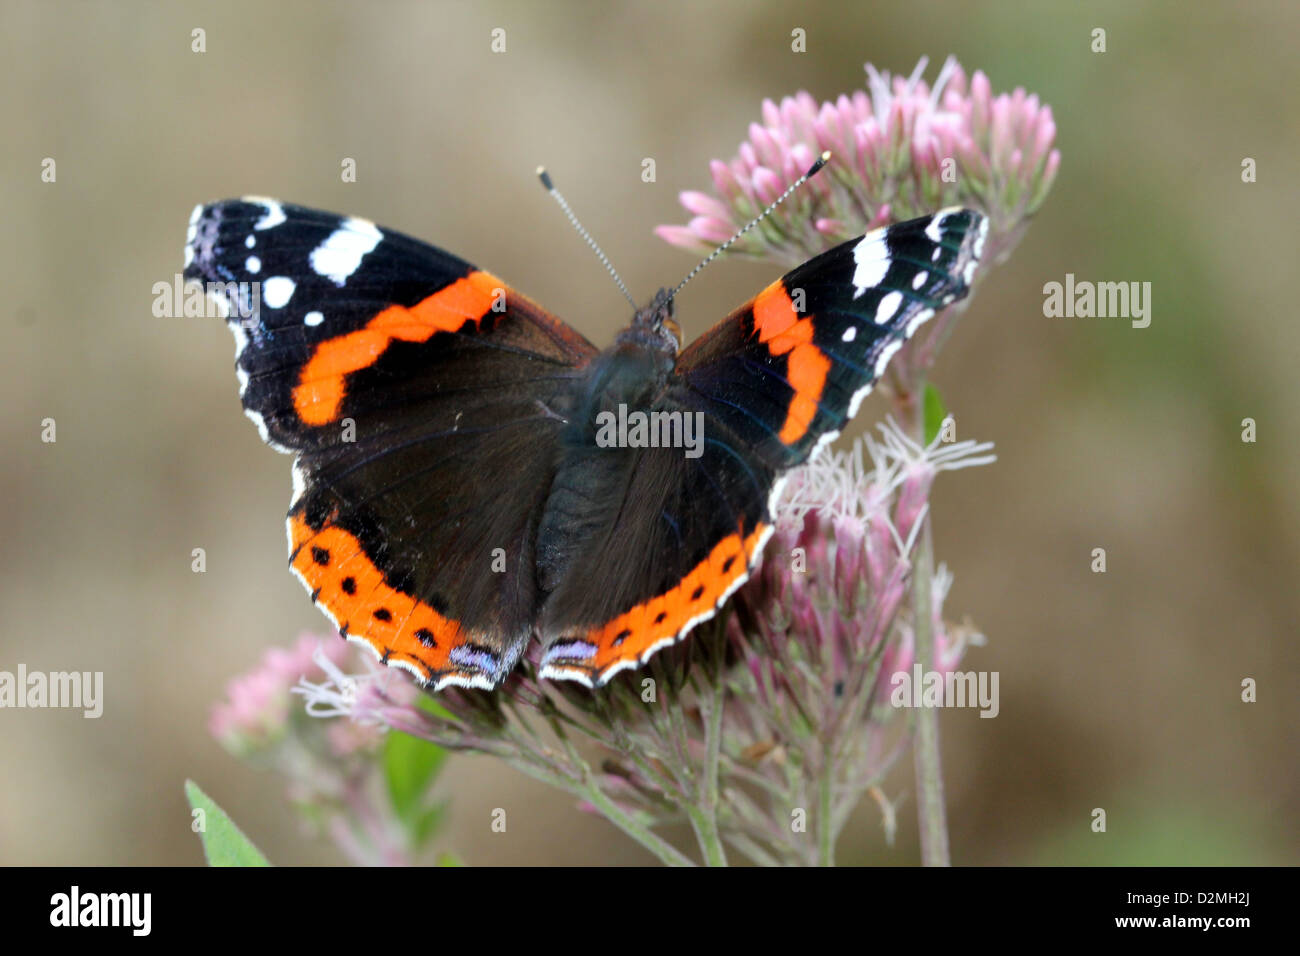 Red admiral butterfly (vanessa atalanta) - Stock Image